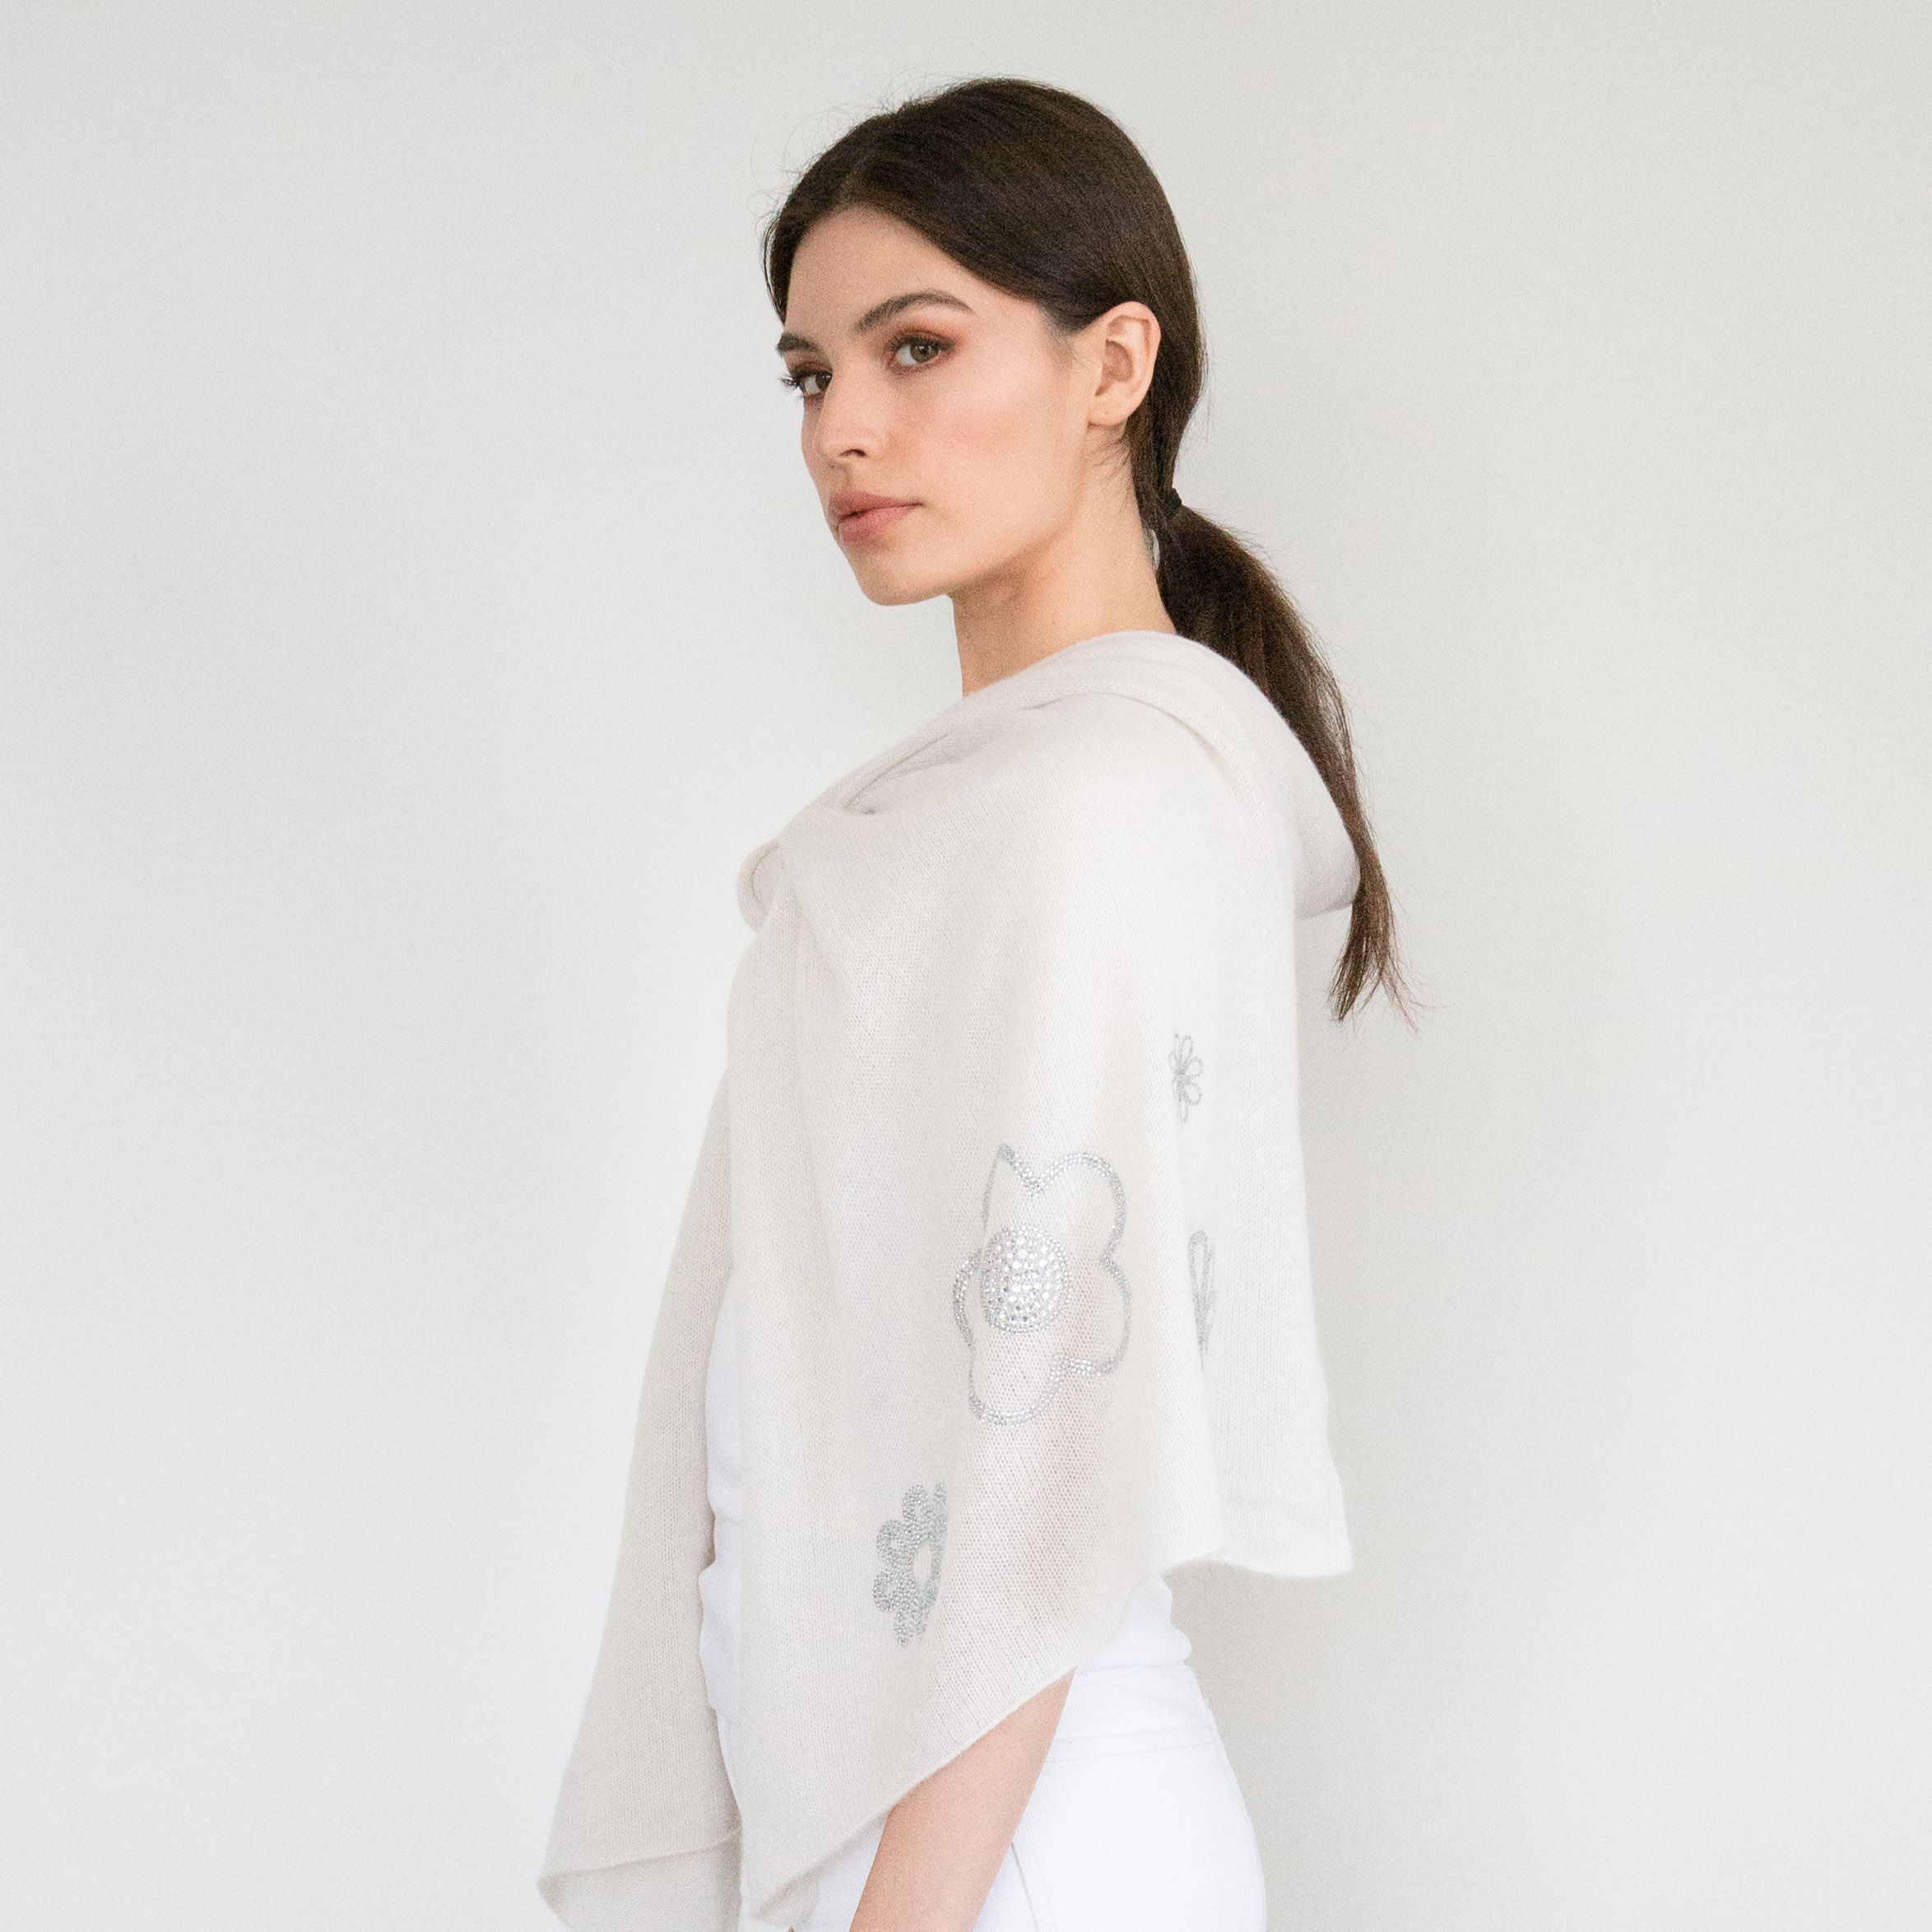 - Scattered Crystal Flowers on Yogi Ivory Cashmere